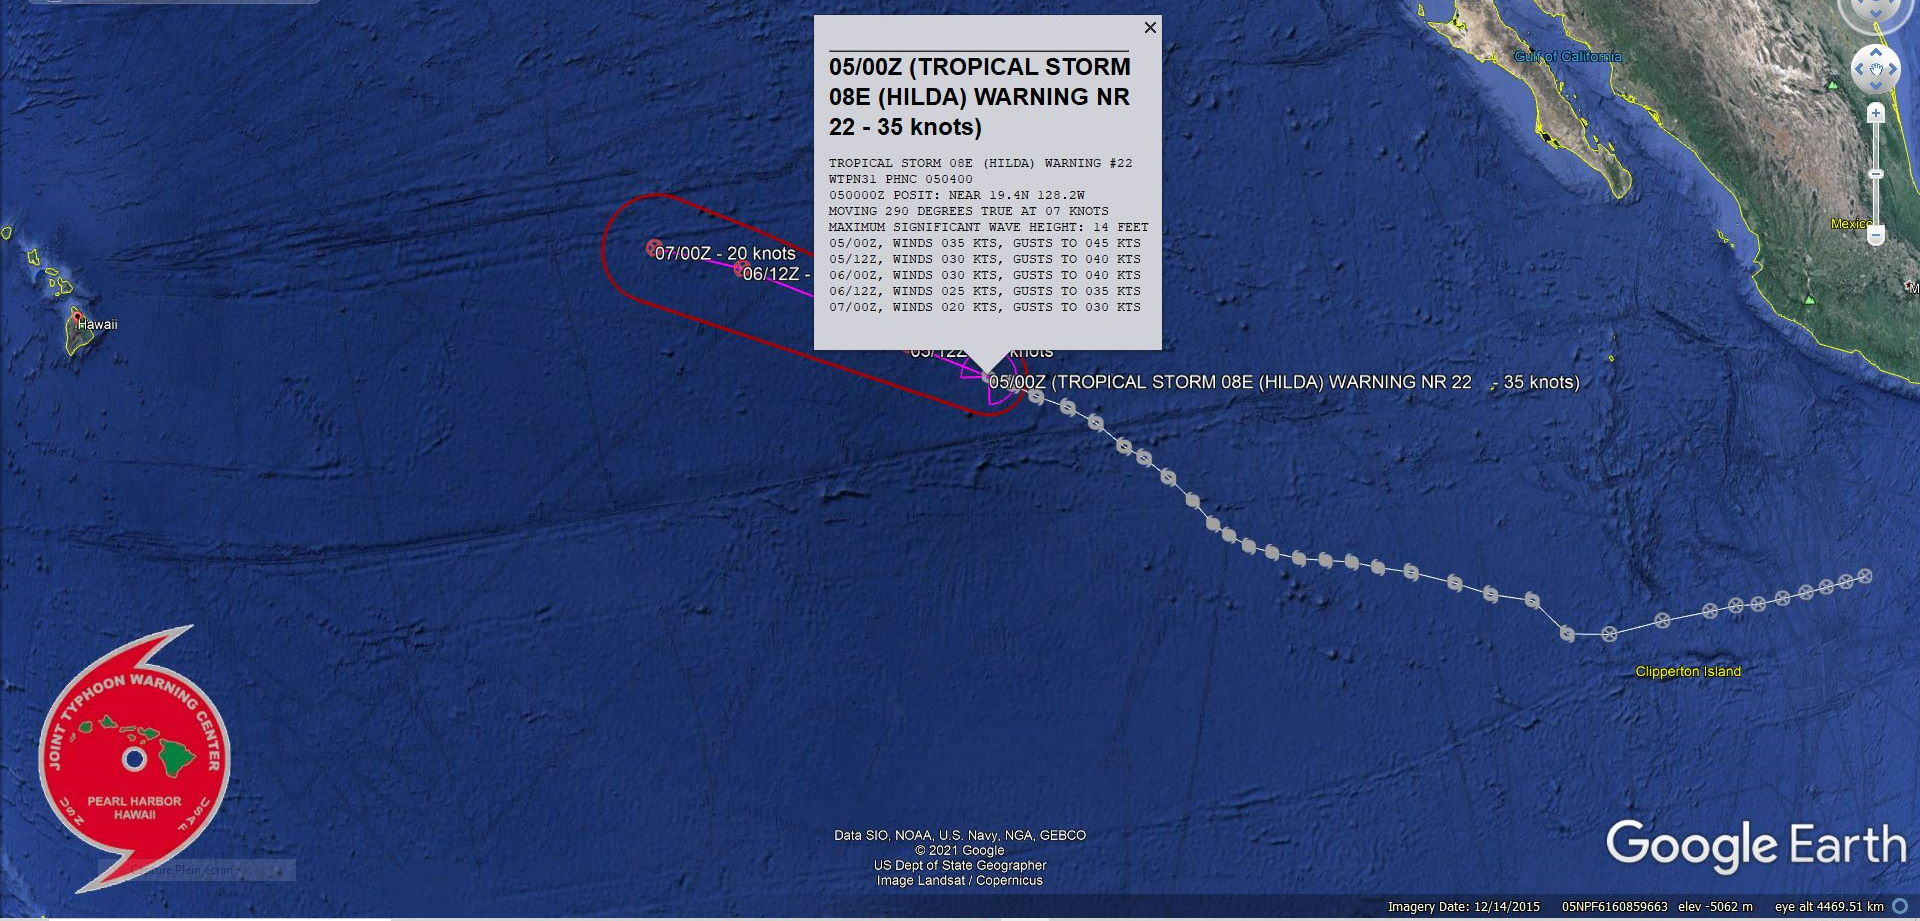 EASTERN PACIFIC. TS 08E(HILDA). WARNING 22 ISSUED AT 05/04UTC. INTENSITY IS FORECAST TO FALL BELOW 35KNOTS WITHIN 12H.